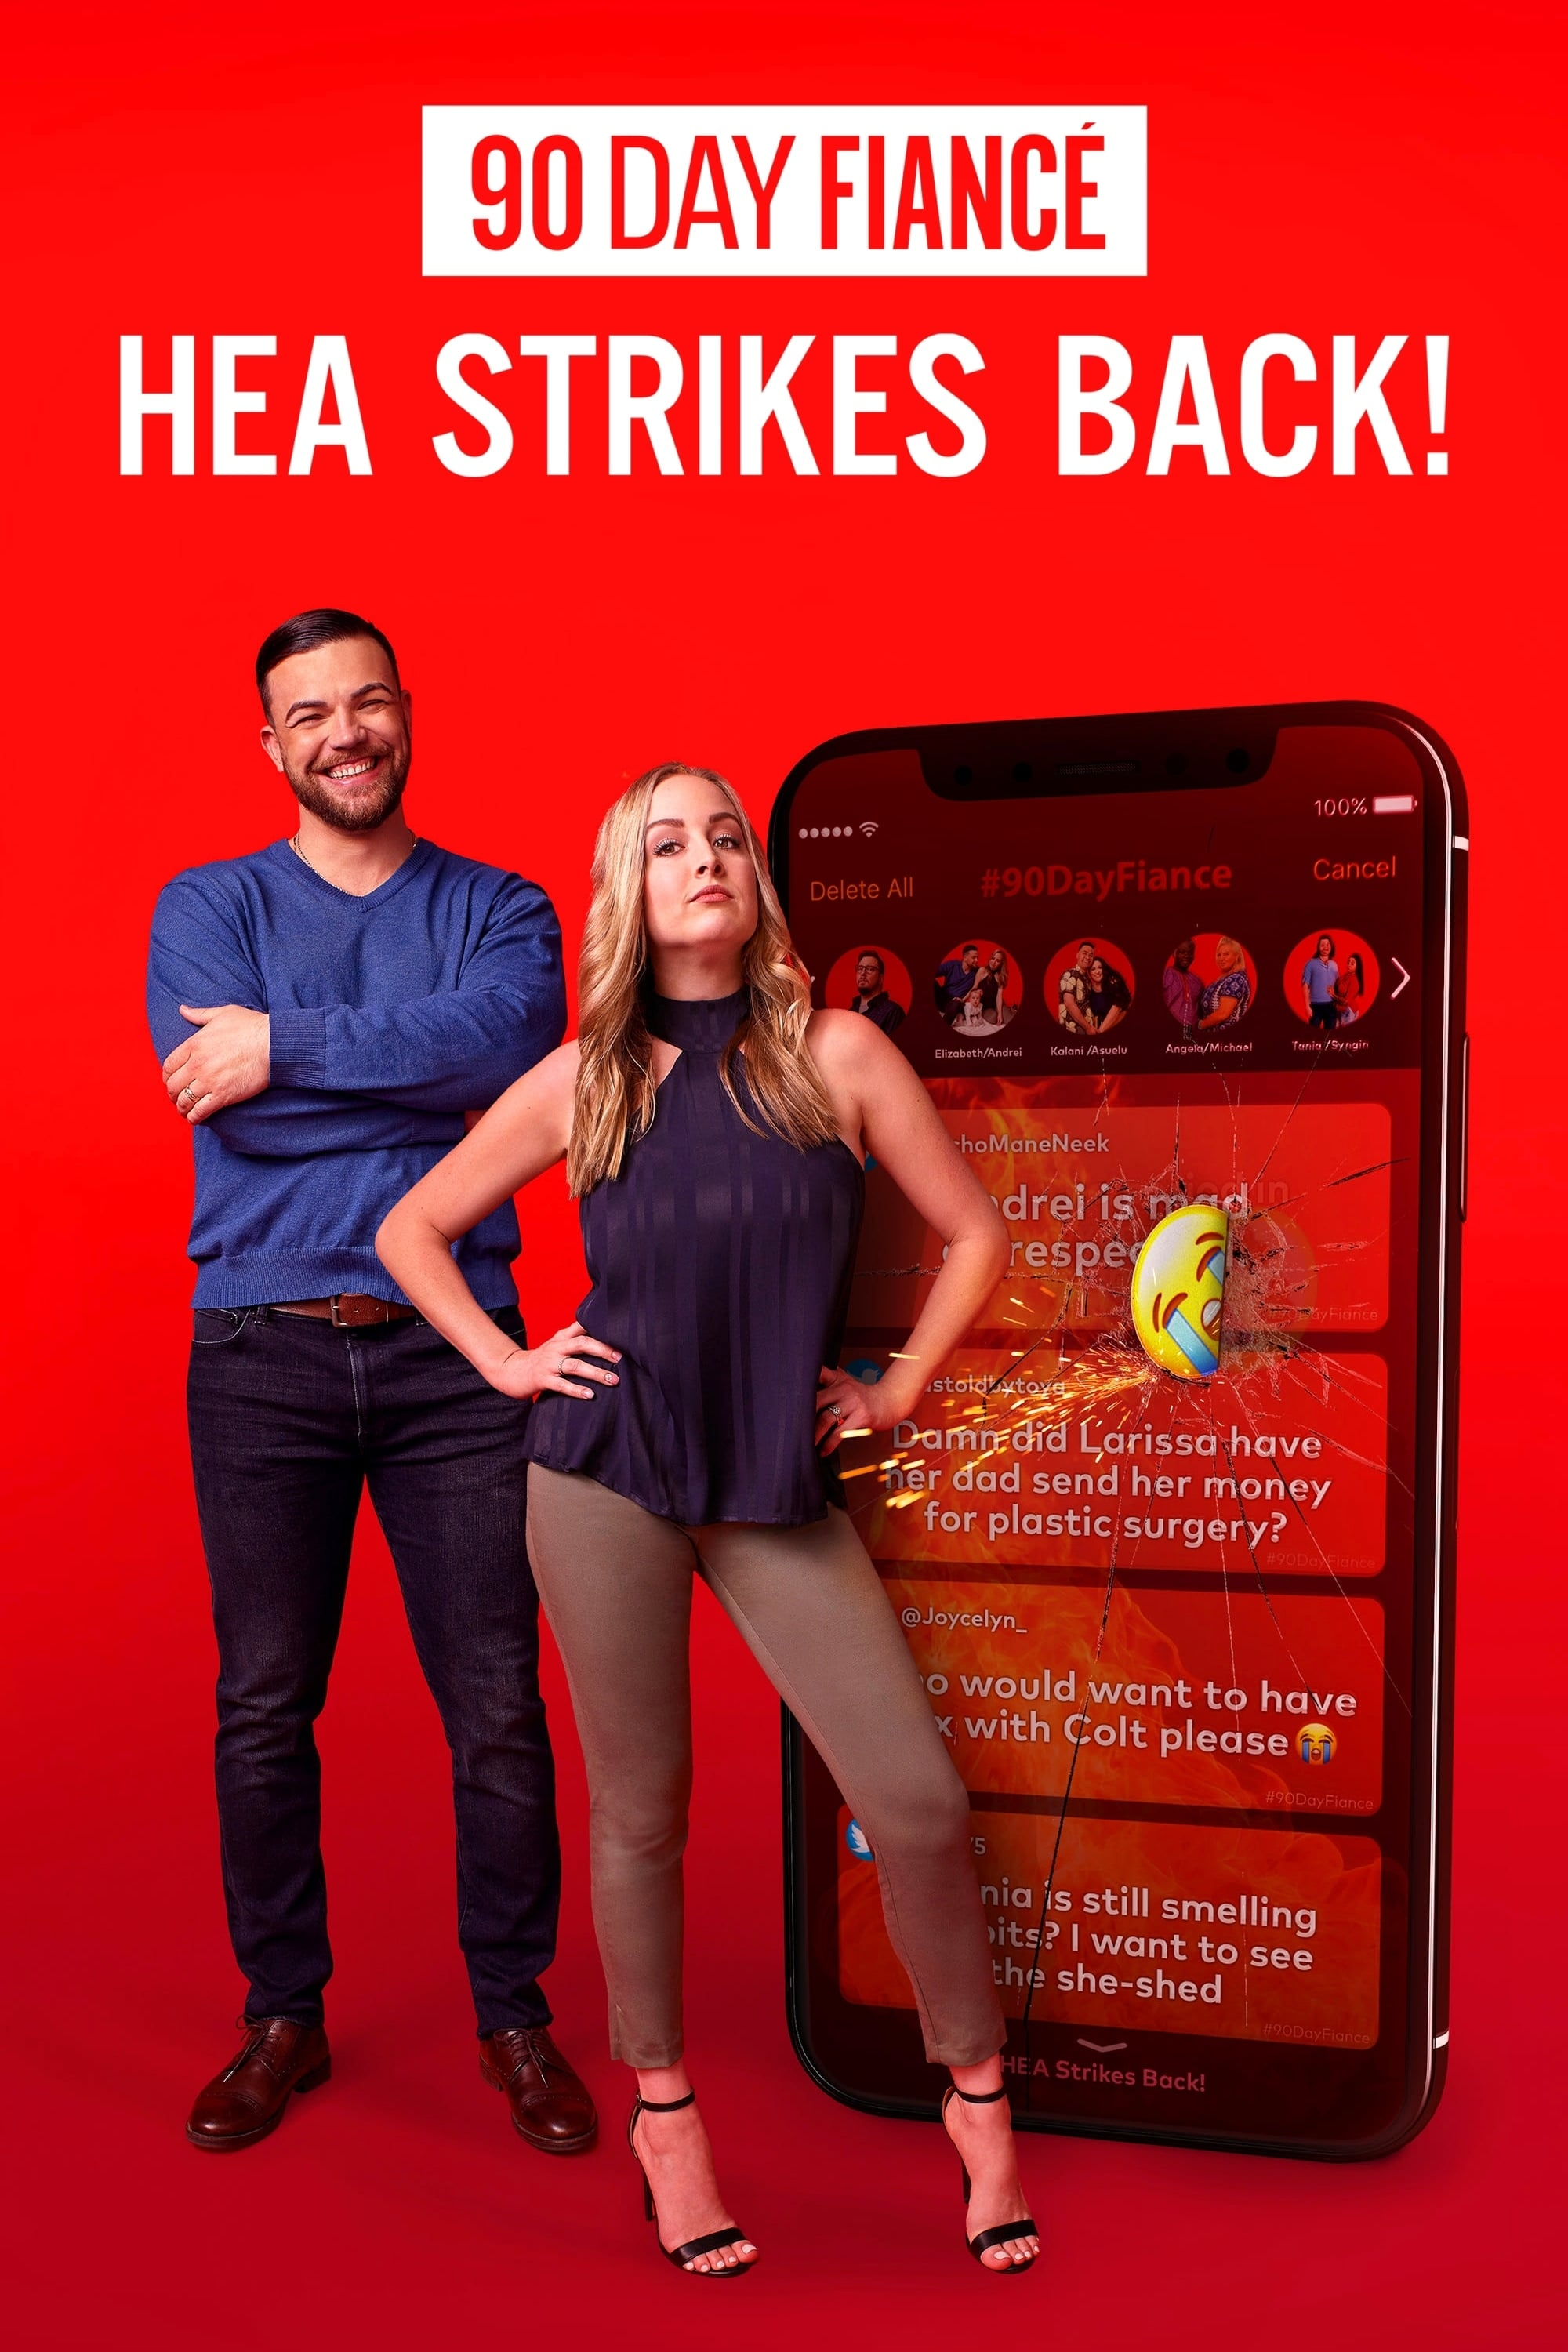 90 Day Fiancé: HEA Strikes Back!